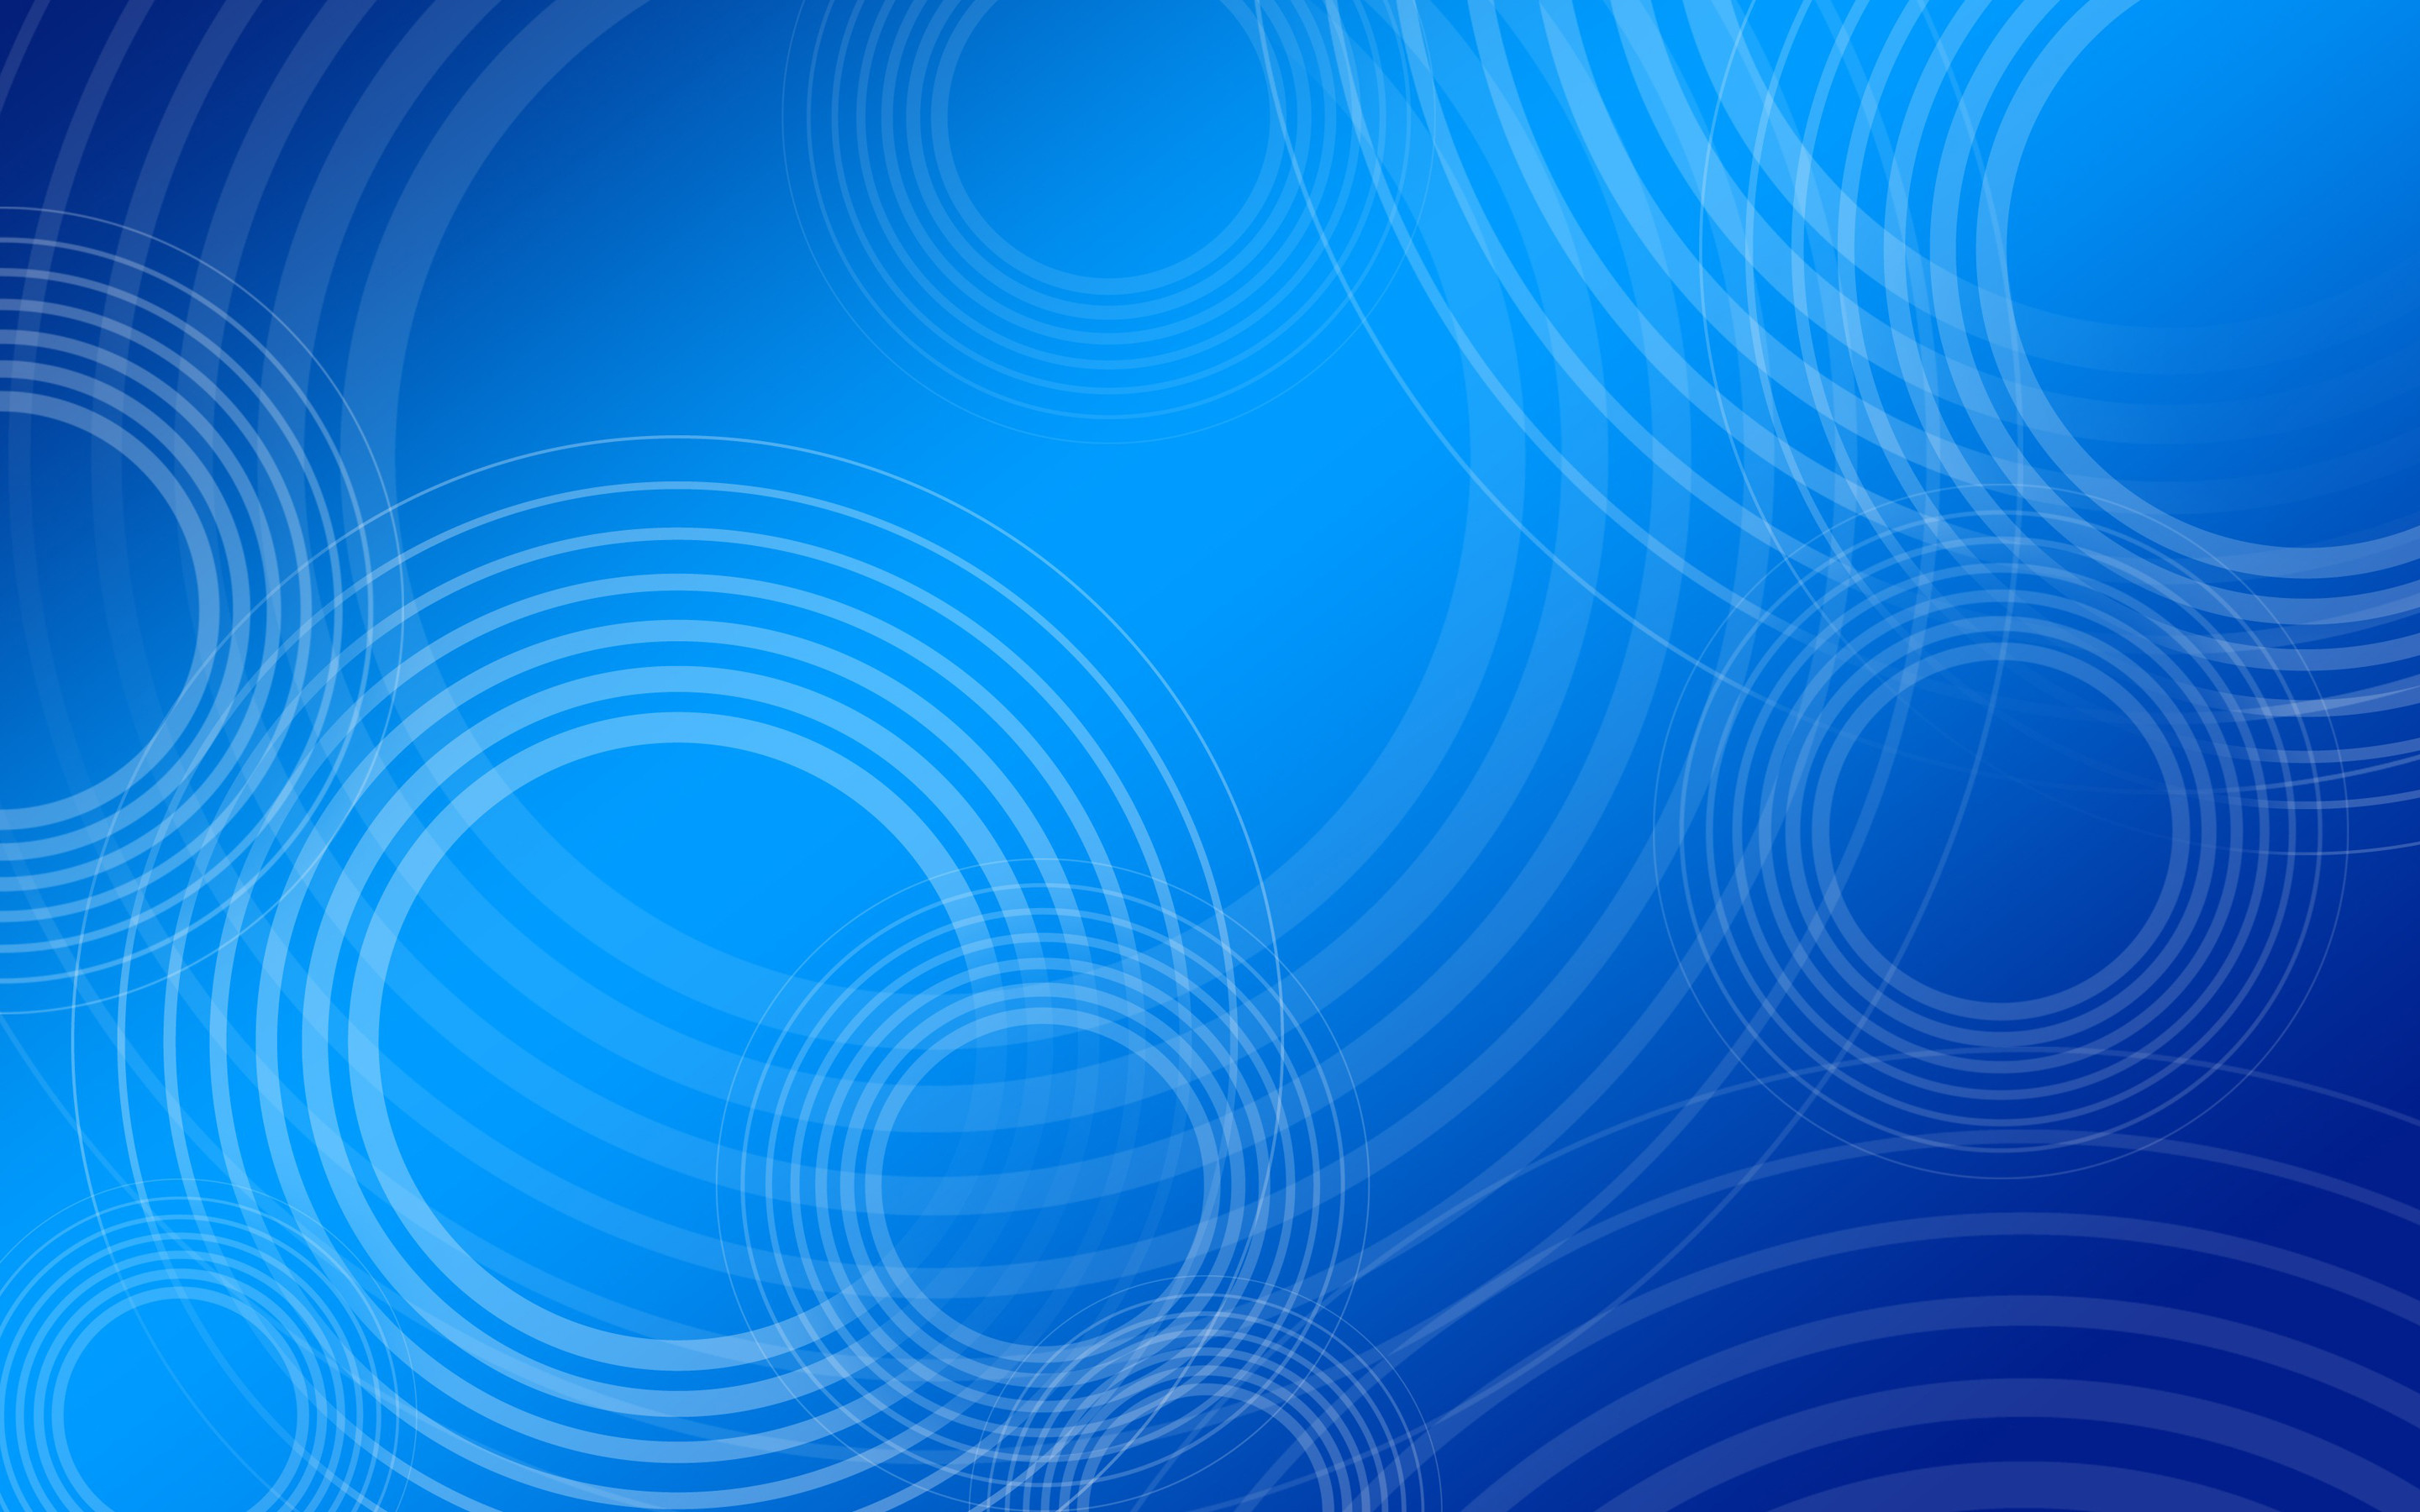 abstract blue backgrounds ·①